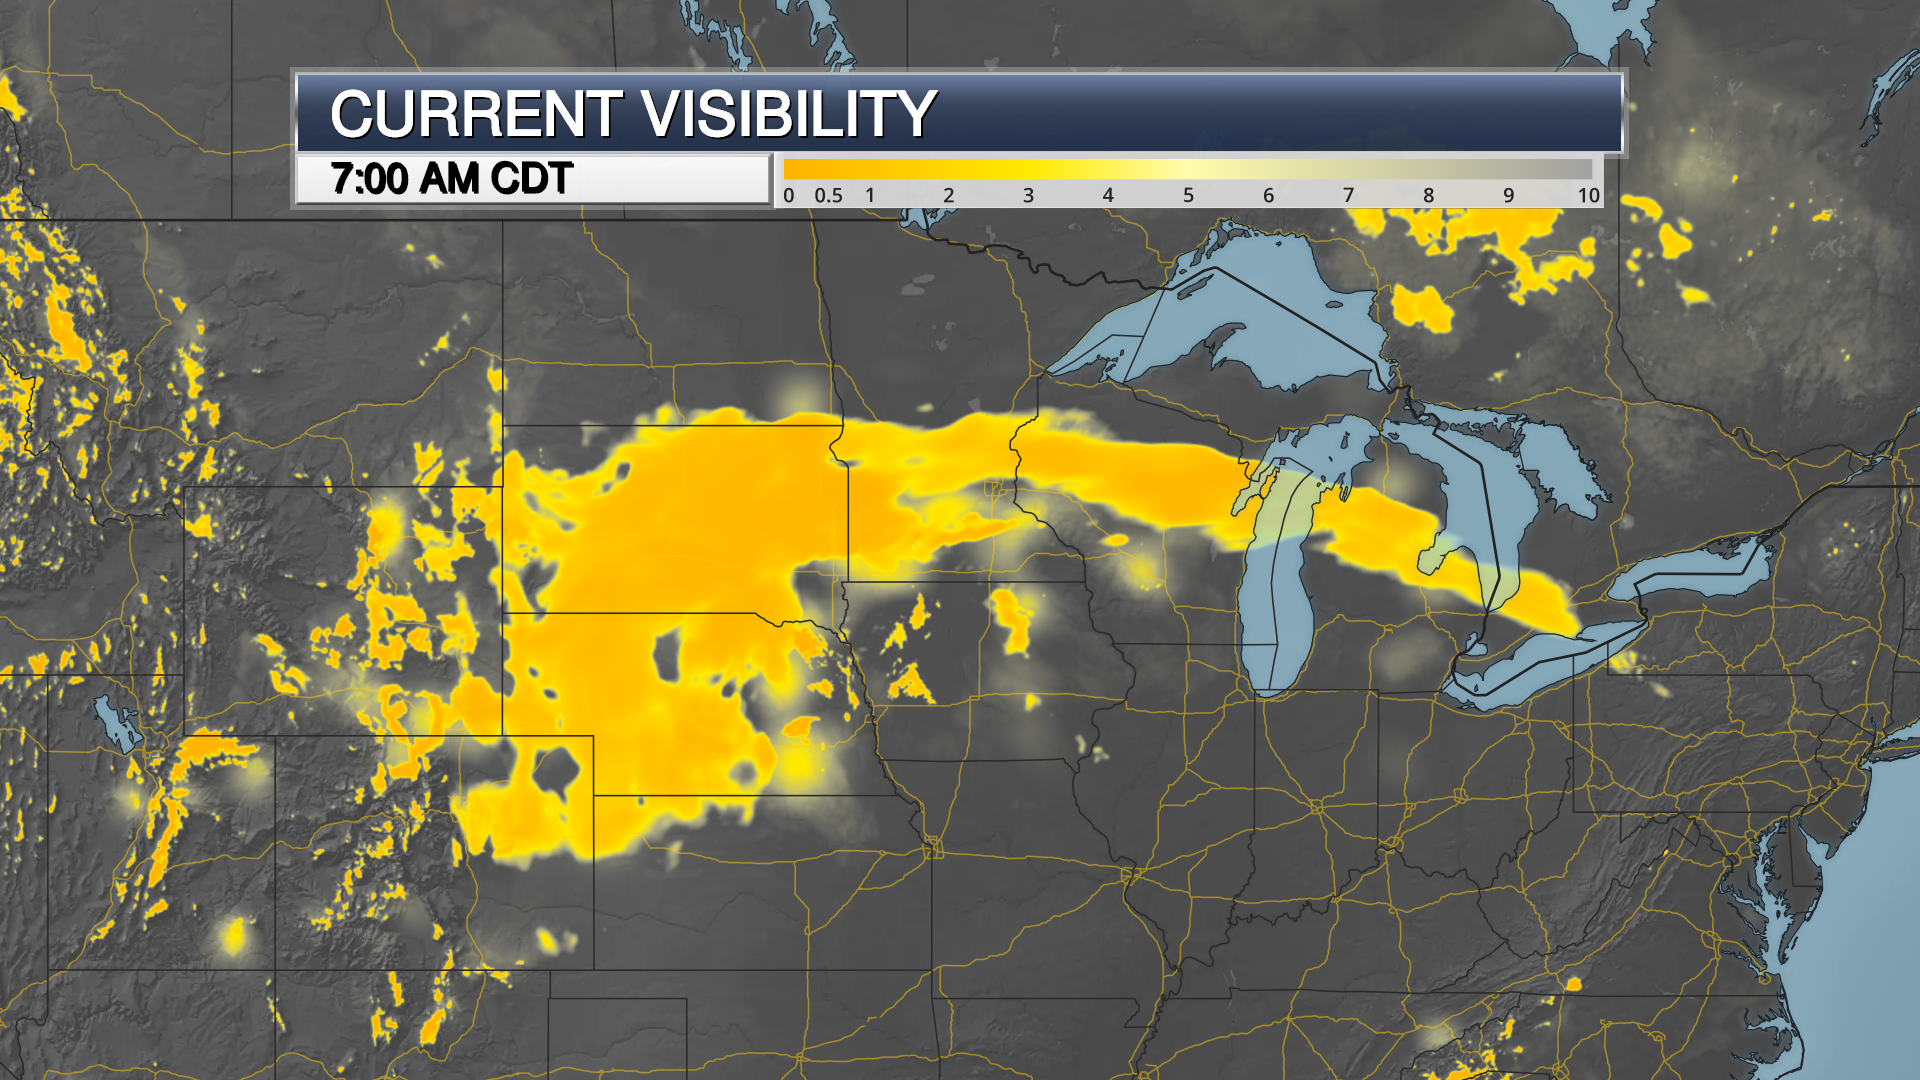 weather visibility map from april 11, 2019 from april 2019 blizzard in northern plains and Midwest on a dark map